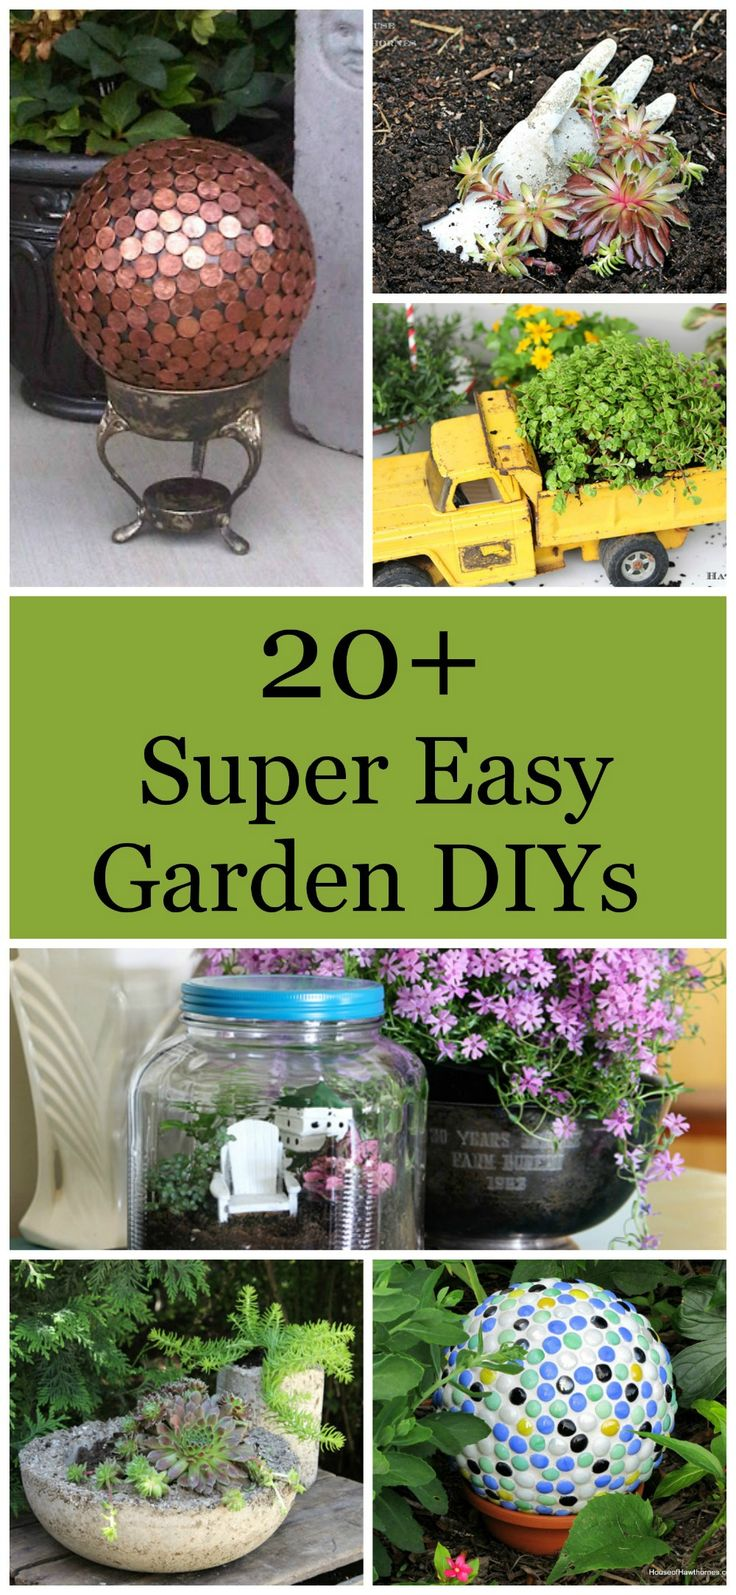 Over 20 DIY gardening projects that are super easy and fun to make. I love the penny ball!